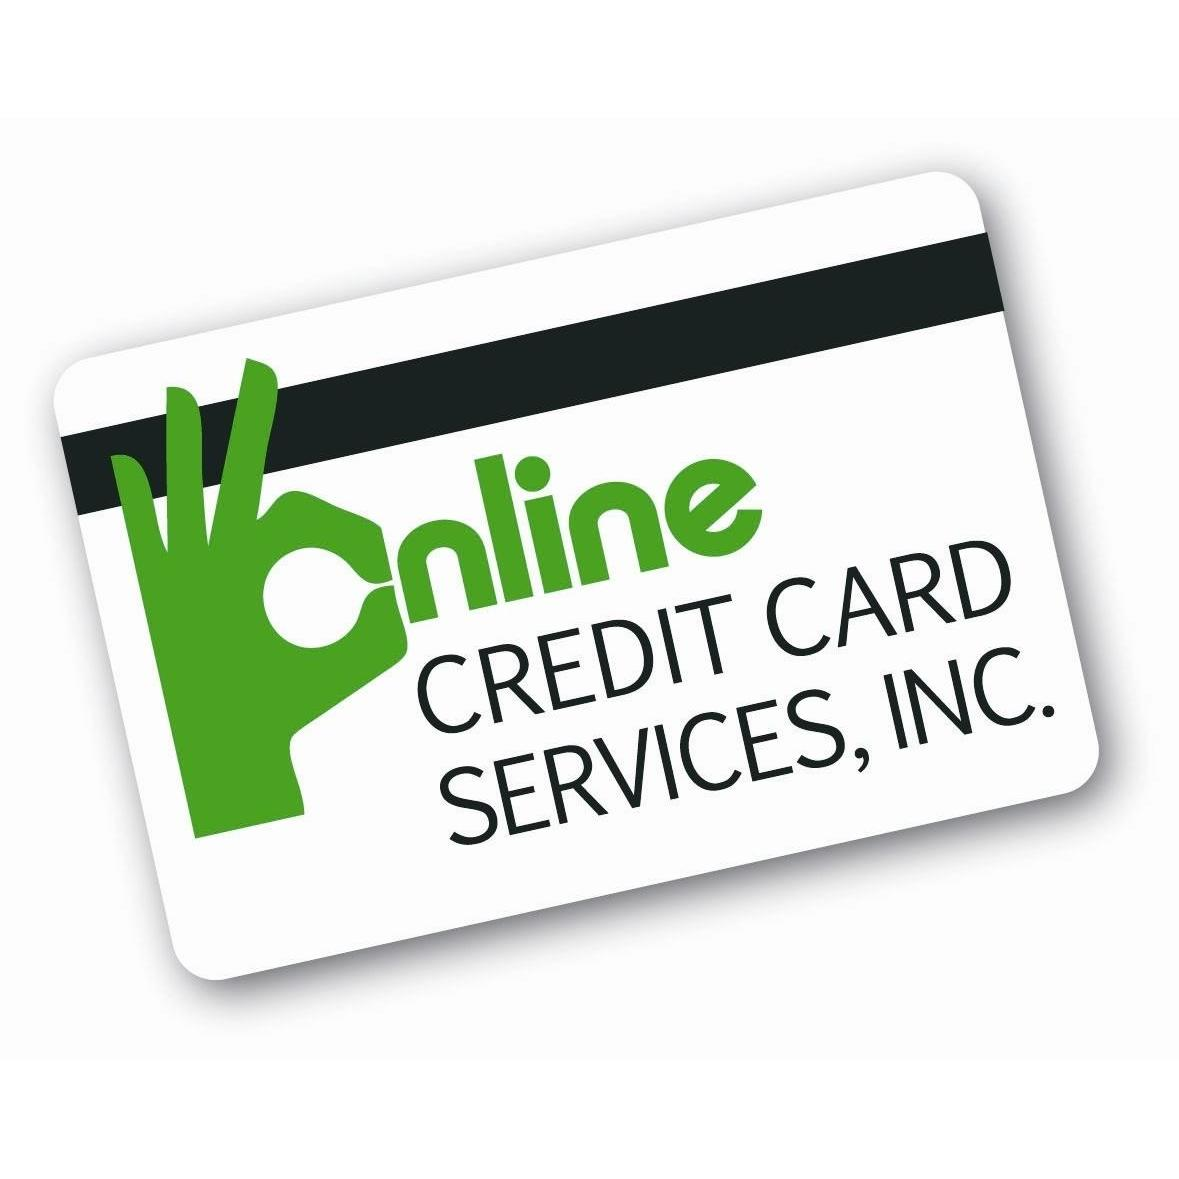 On-Line Credit Card Services, Inc image 12